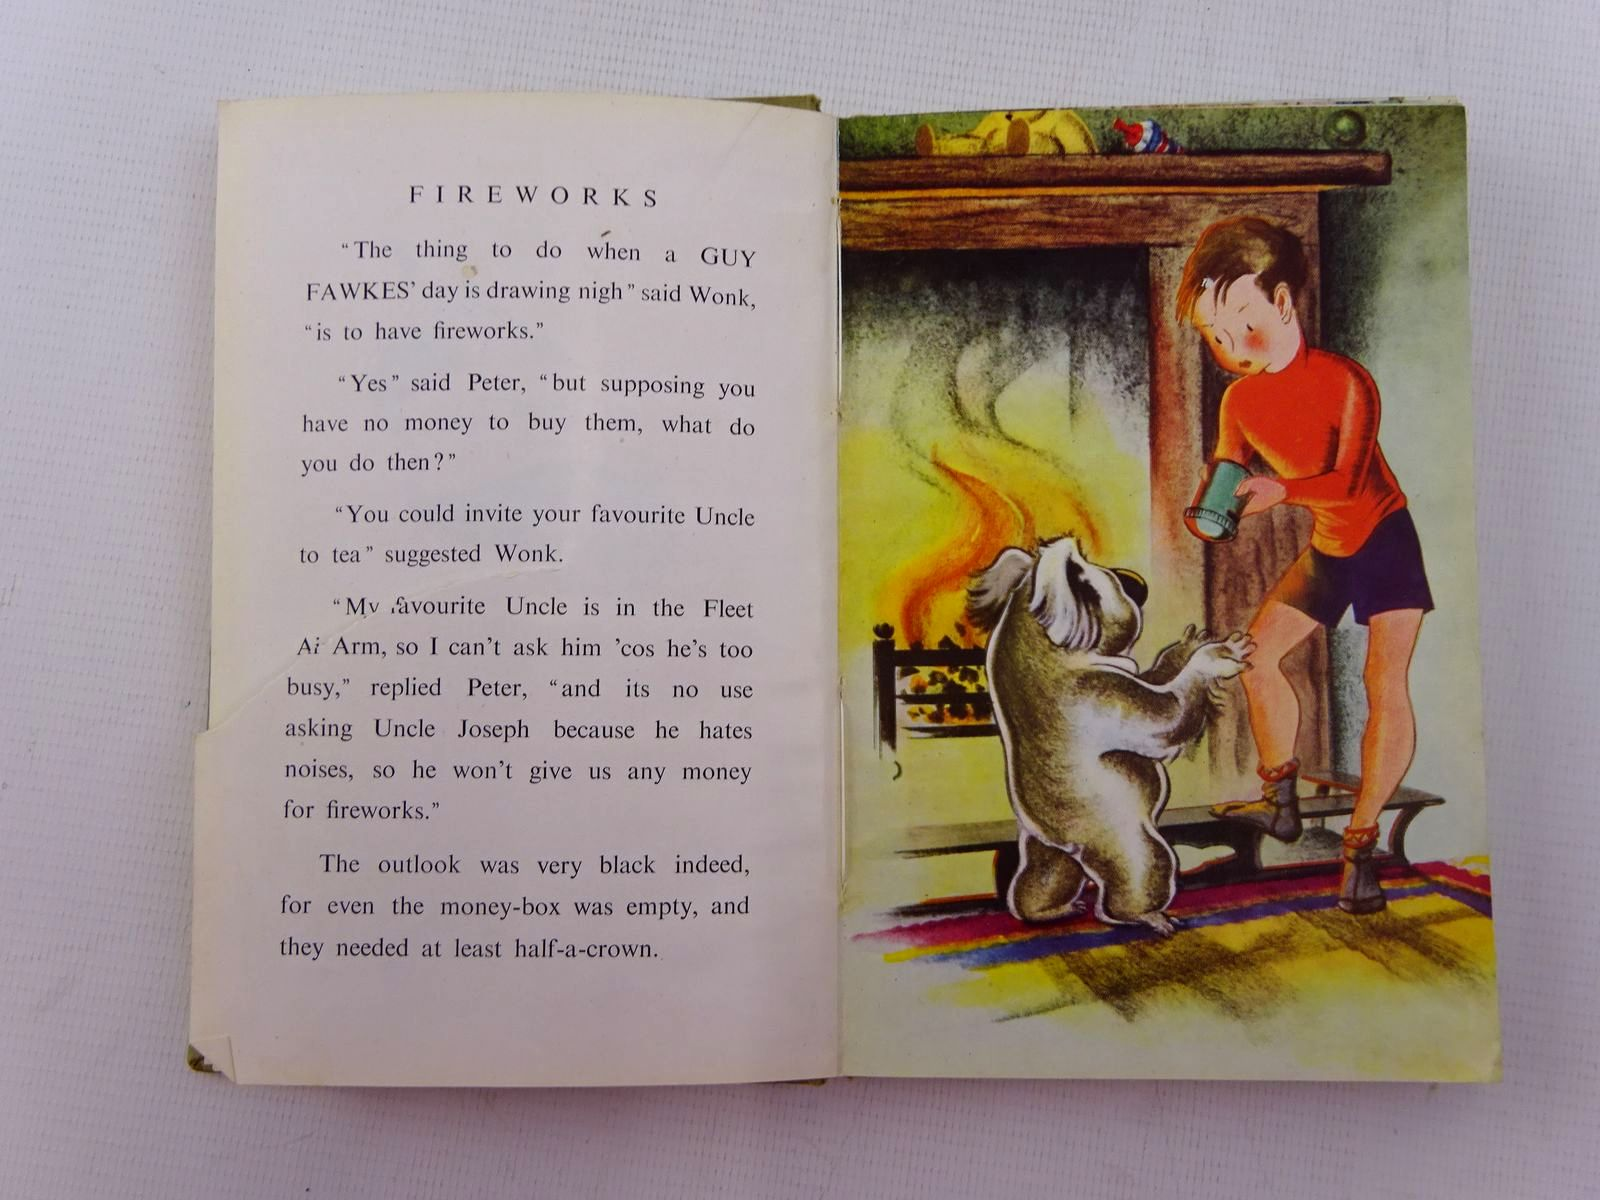 Photo of THE ADVENTURES OF WONK - FIREWORKS written by Levy, Muriel illustrated by Kiddell-Monroe, Joan published by Wills & Hepworth Ltd. (STOCK CODE: 2129021)  for sale by Stella & Rose's Books